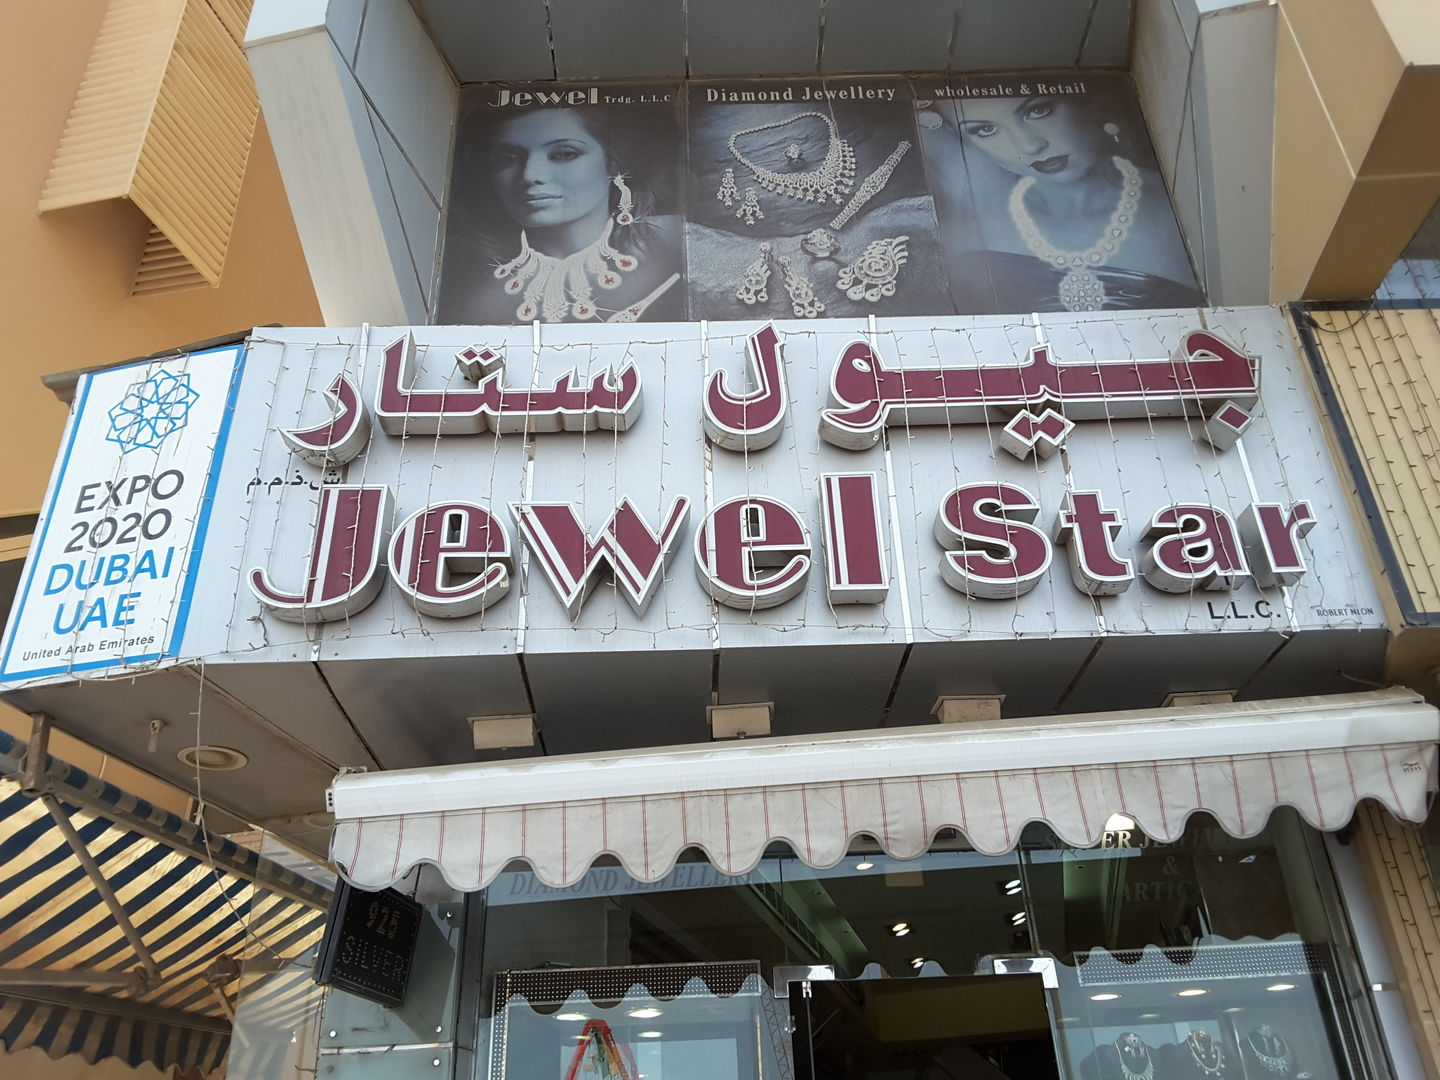 HiDubai-business-jewel-star-shopping-jewellery-precious-stones-al-daghaya-dubai-2